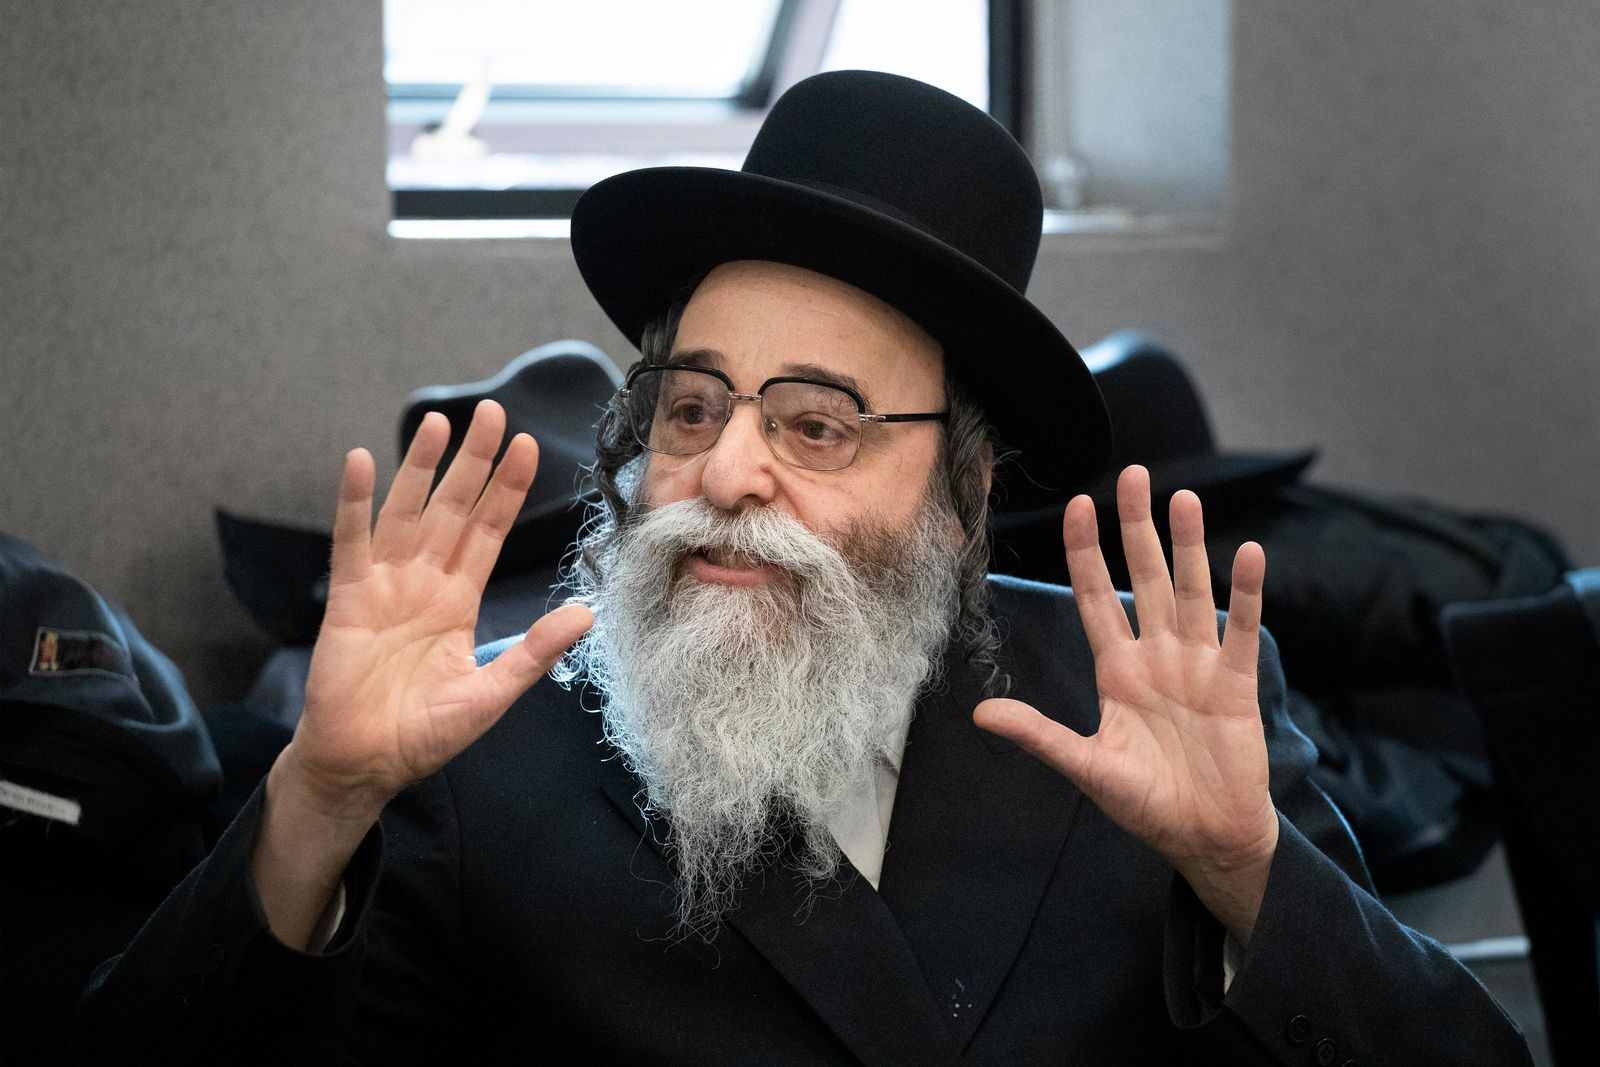 Rabbi David Niederman speaks during a meeting with Attorney General William Barr at the Boro Park Jewish Community Council, Tuesday, Jan. 28, 2020 in New York. (AP Photo/Mark Lennihan)